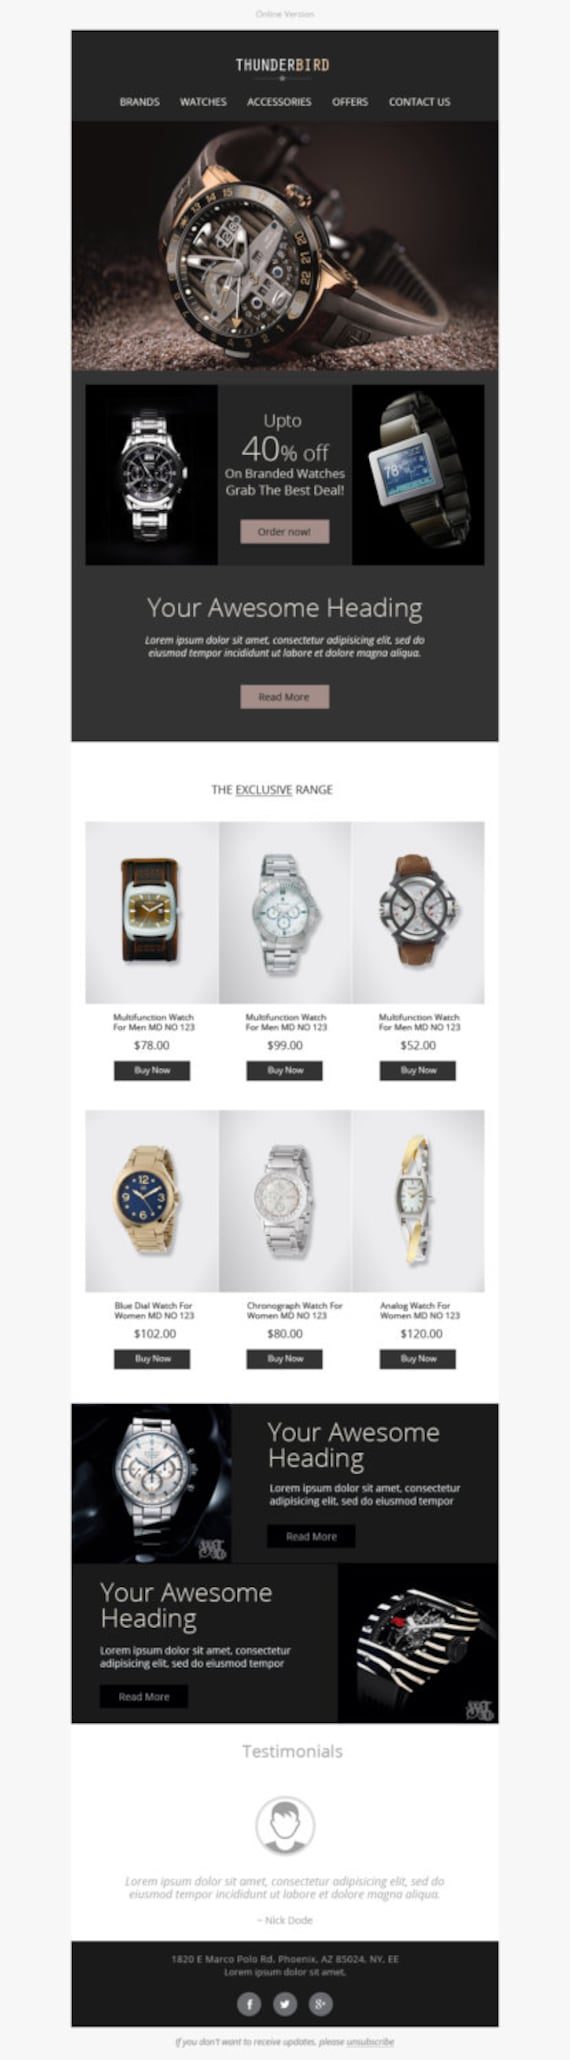 Ultra Responsive and Sales Email Template Sales Responsive